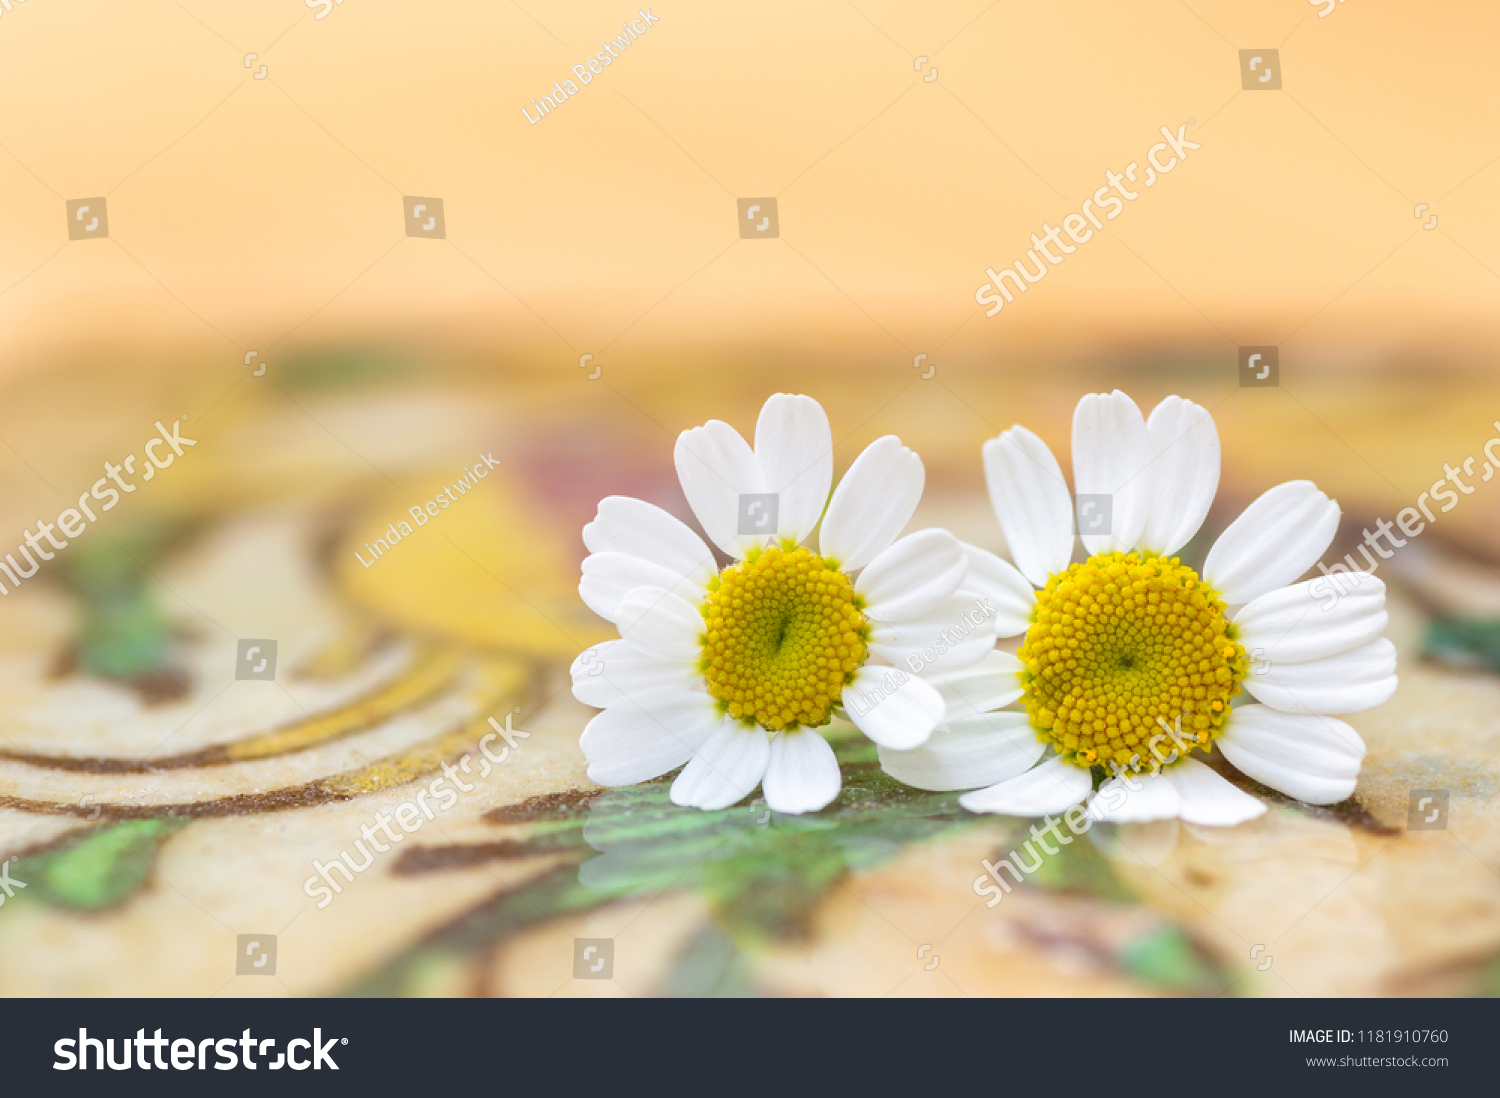 stock-photo-feverfew-flowers-close-up-de